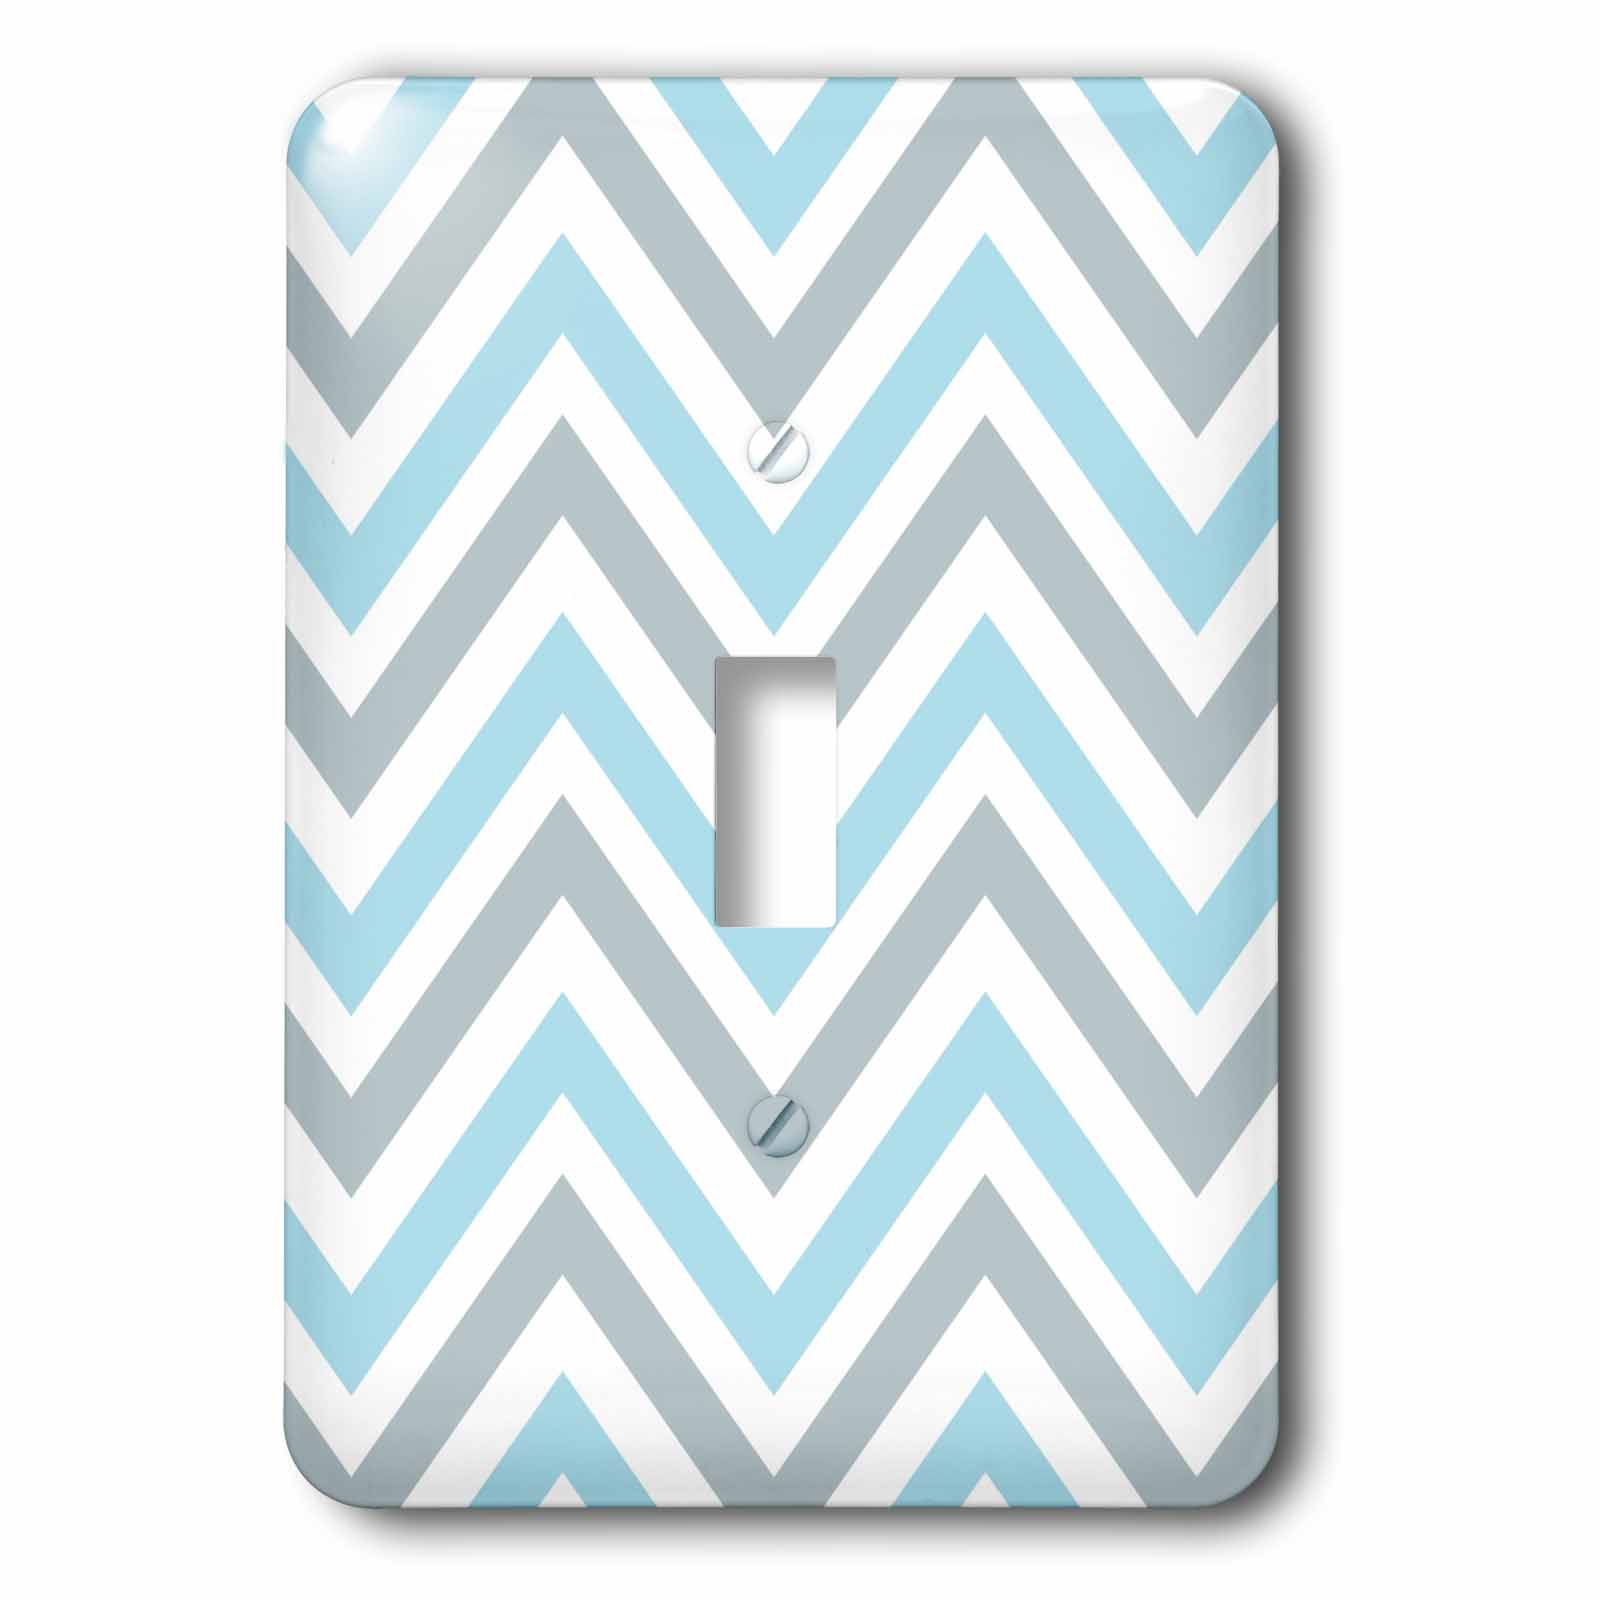 3dRose Light Blue and Grey Chevron zig zag pattern - modern pastel zigzags, 2 Plug Outlet Cover